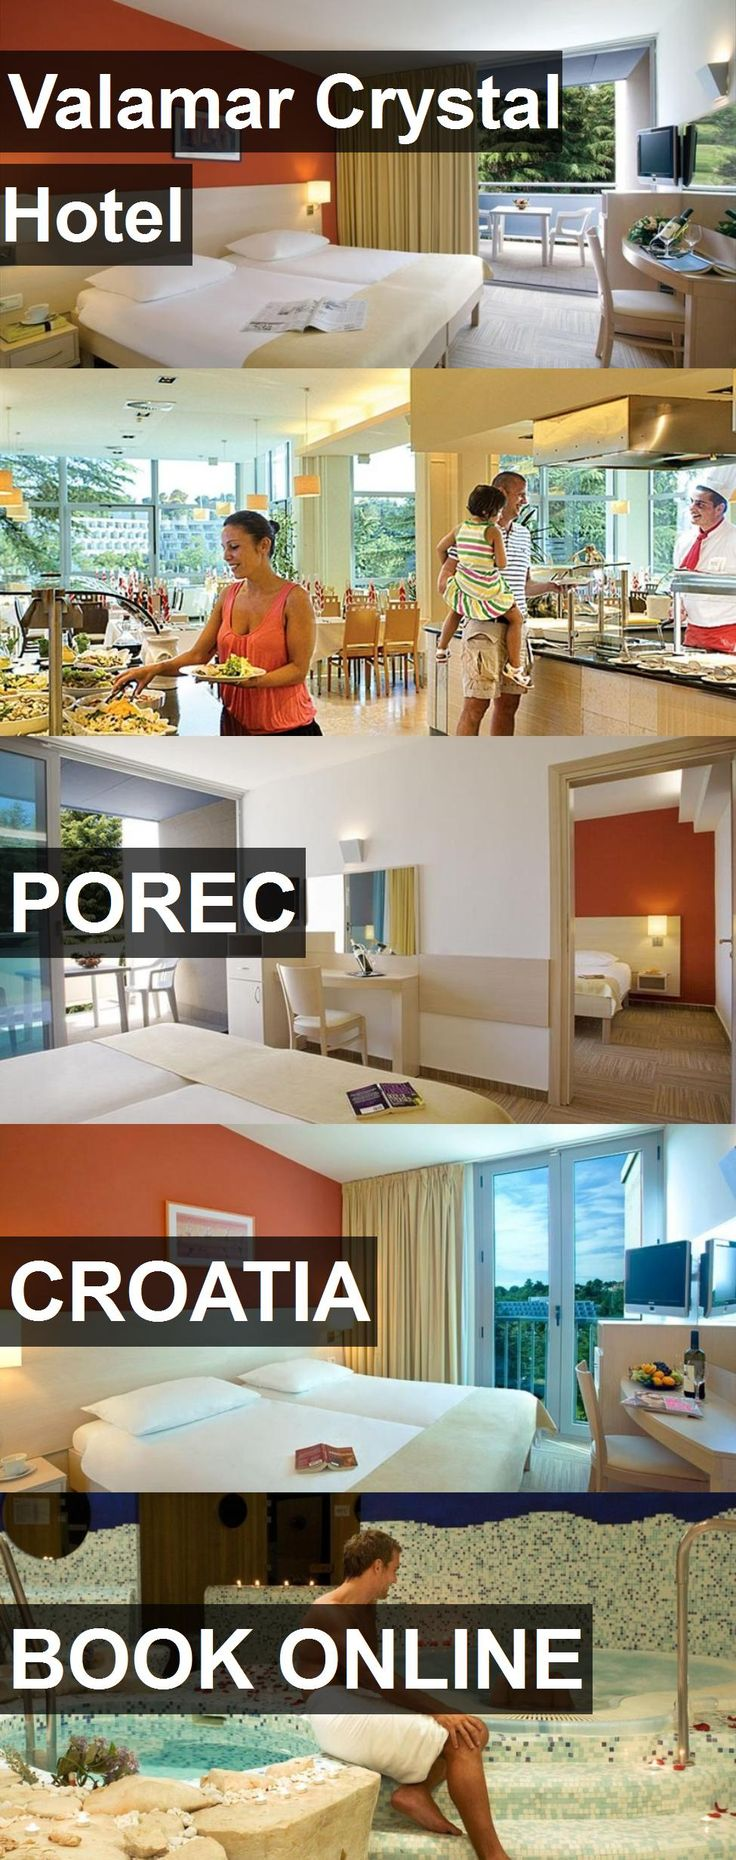 Valamar Crystal Hotel in Porec, Croatia. For more information, photos, reviews and best prices please follow the link. #Croatia #Porec #travel #vacation #hotel